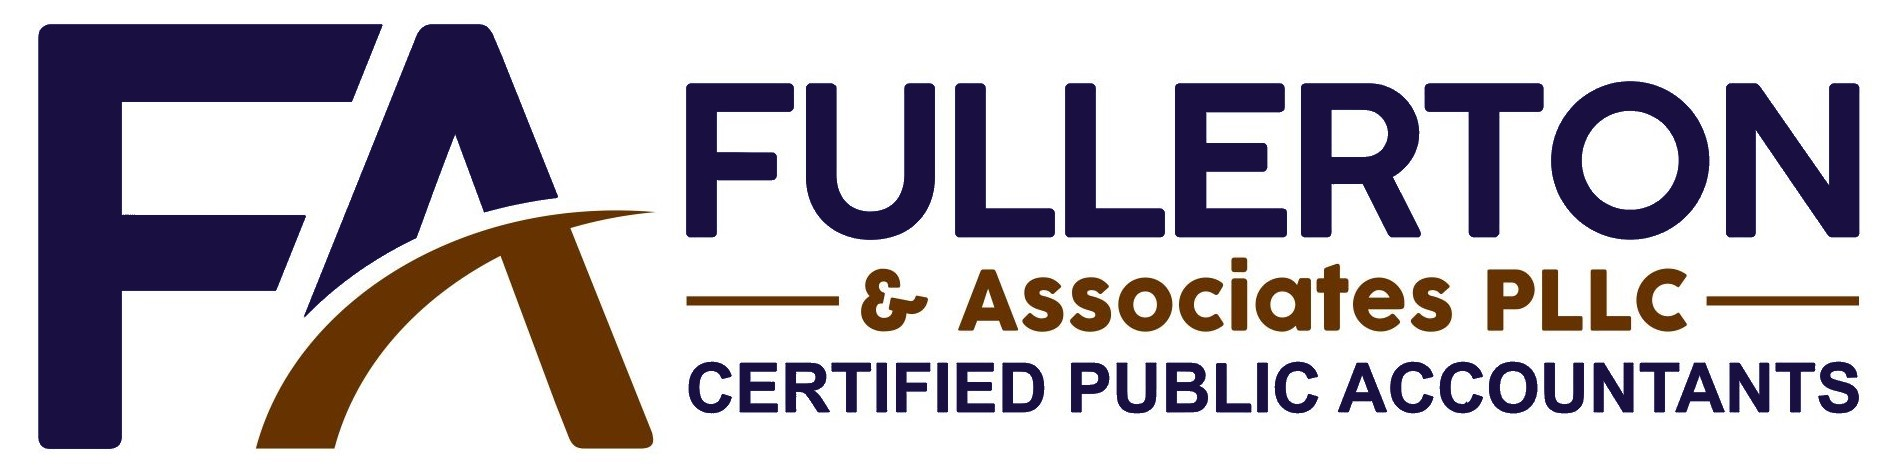 Abilene, Texas CPA Firm | Tax Preparation Page | Fullerton & Associates PLLC